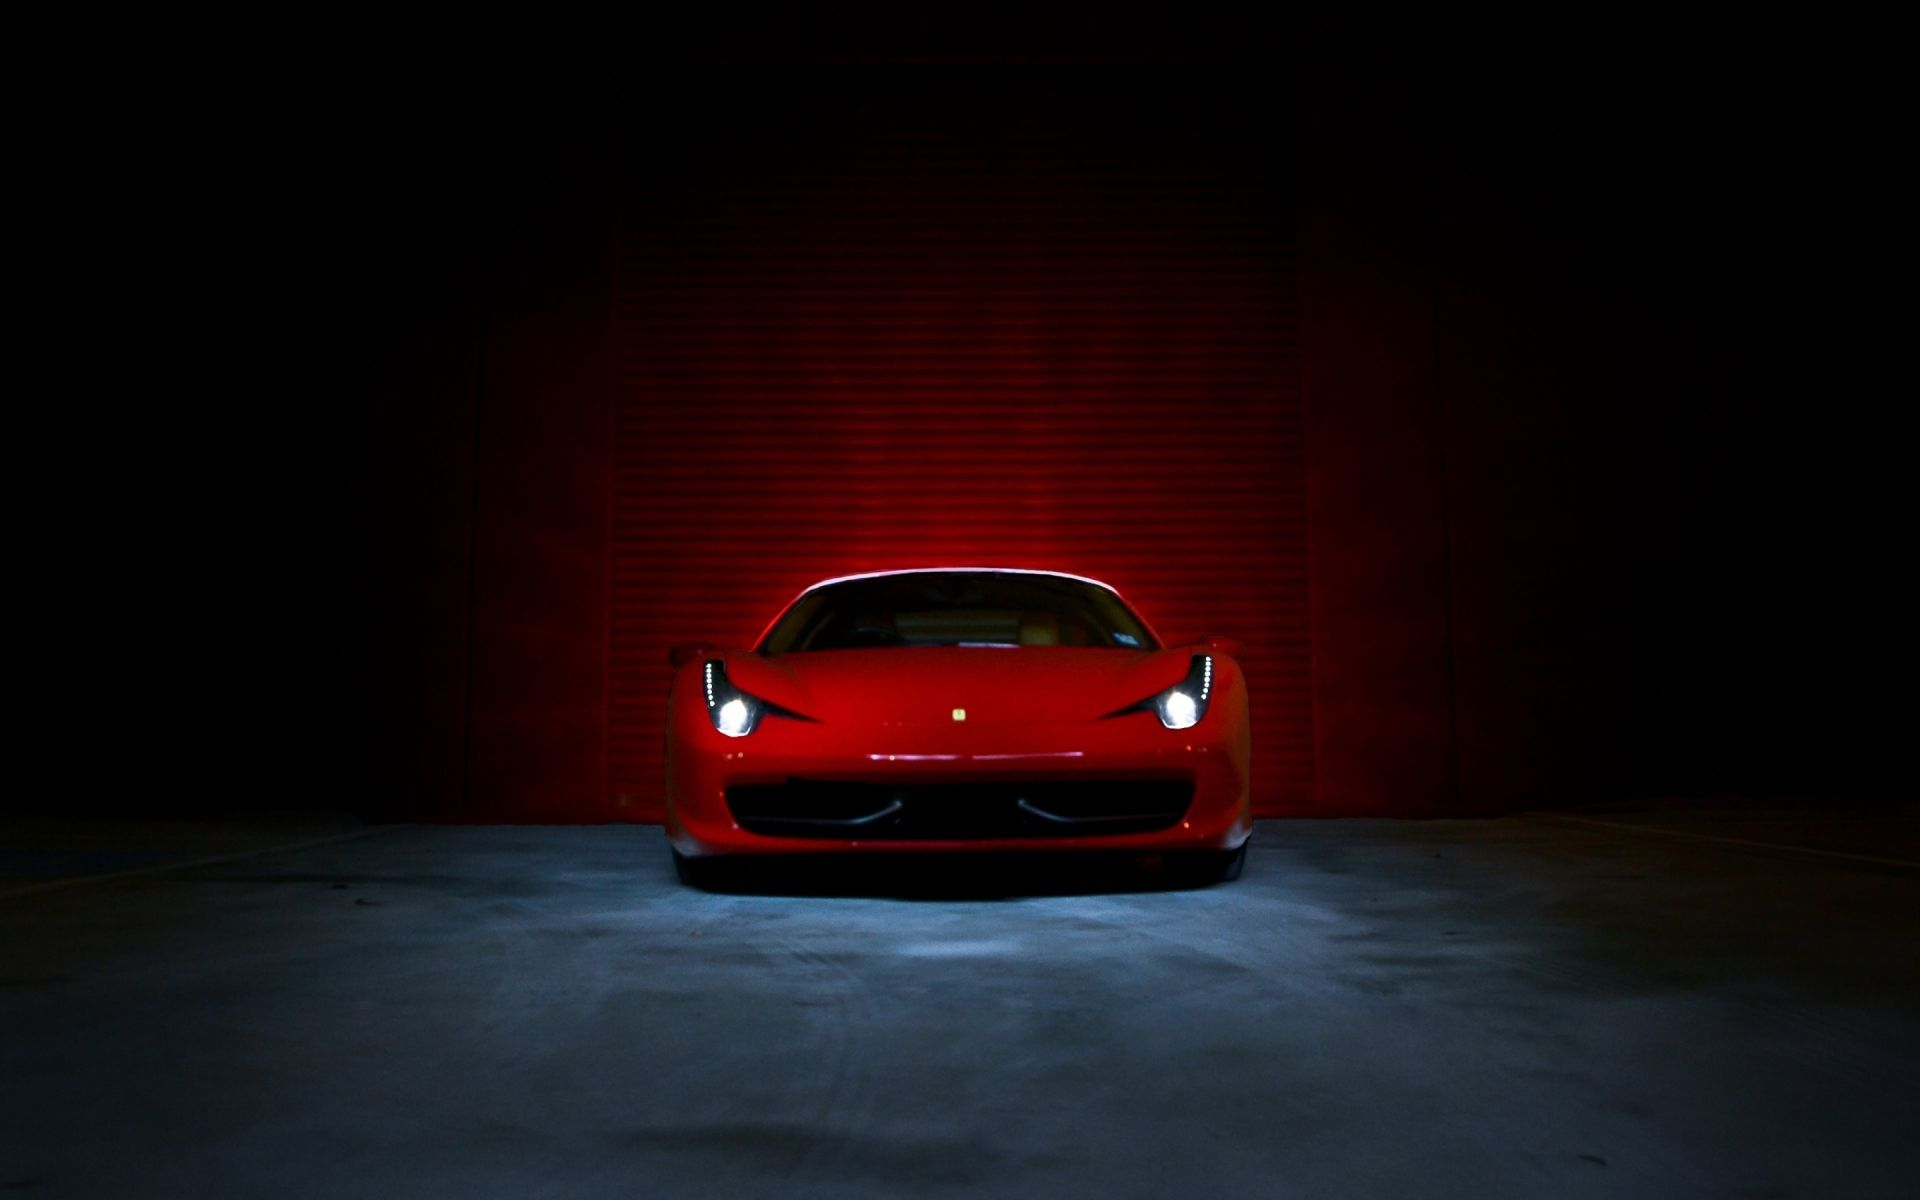 Dark Ferrari Wallpapers Top Free Dark Ferrari Backgrounds Wallpaperaccess